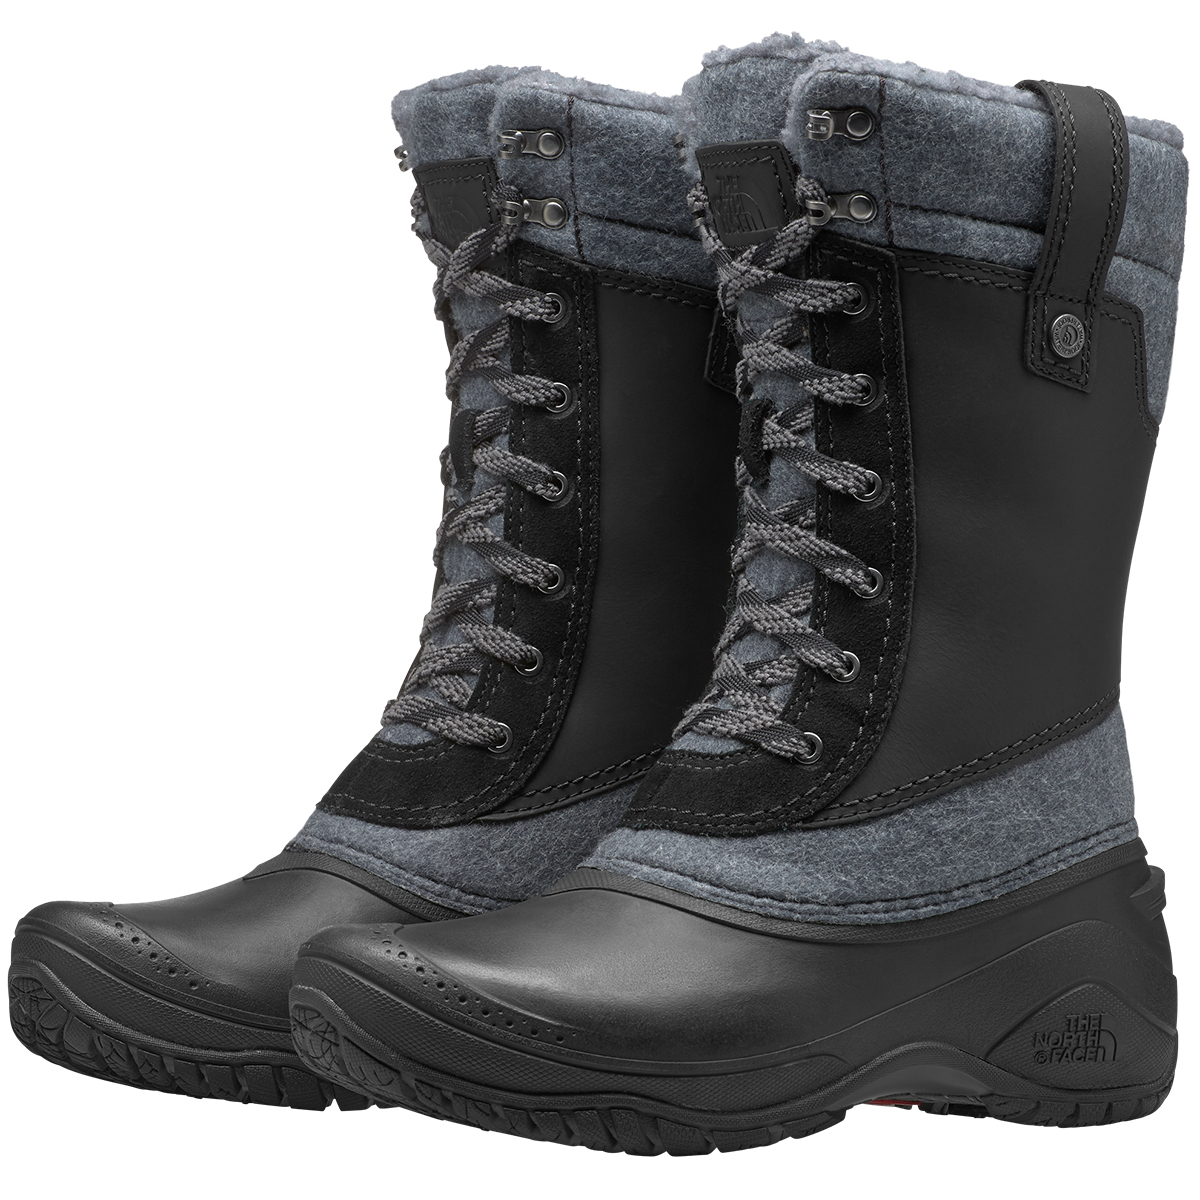 The North Face Women's Shellista 3 Mid Boots - Black, 6